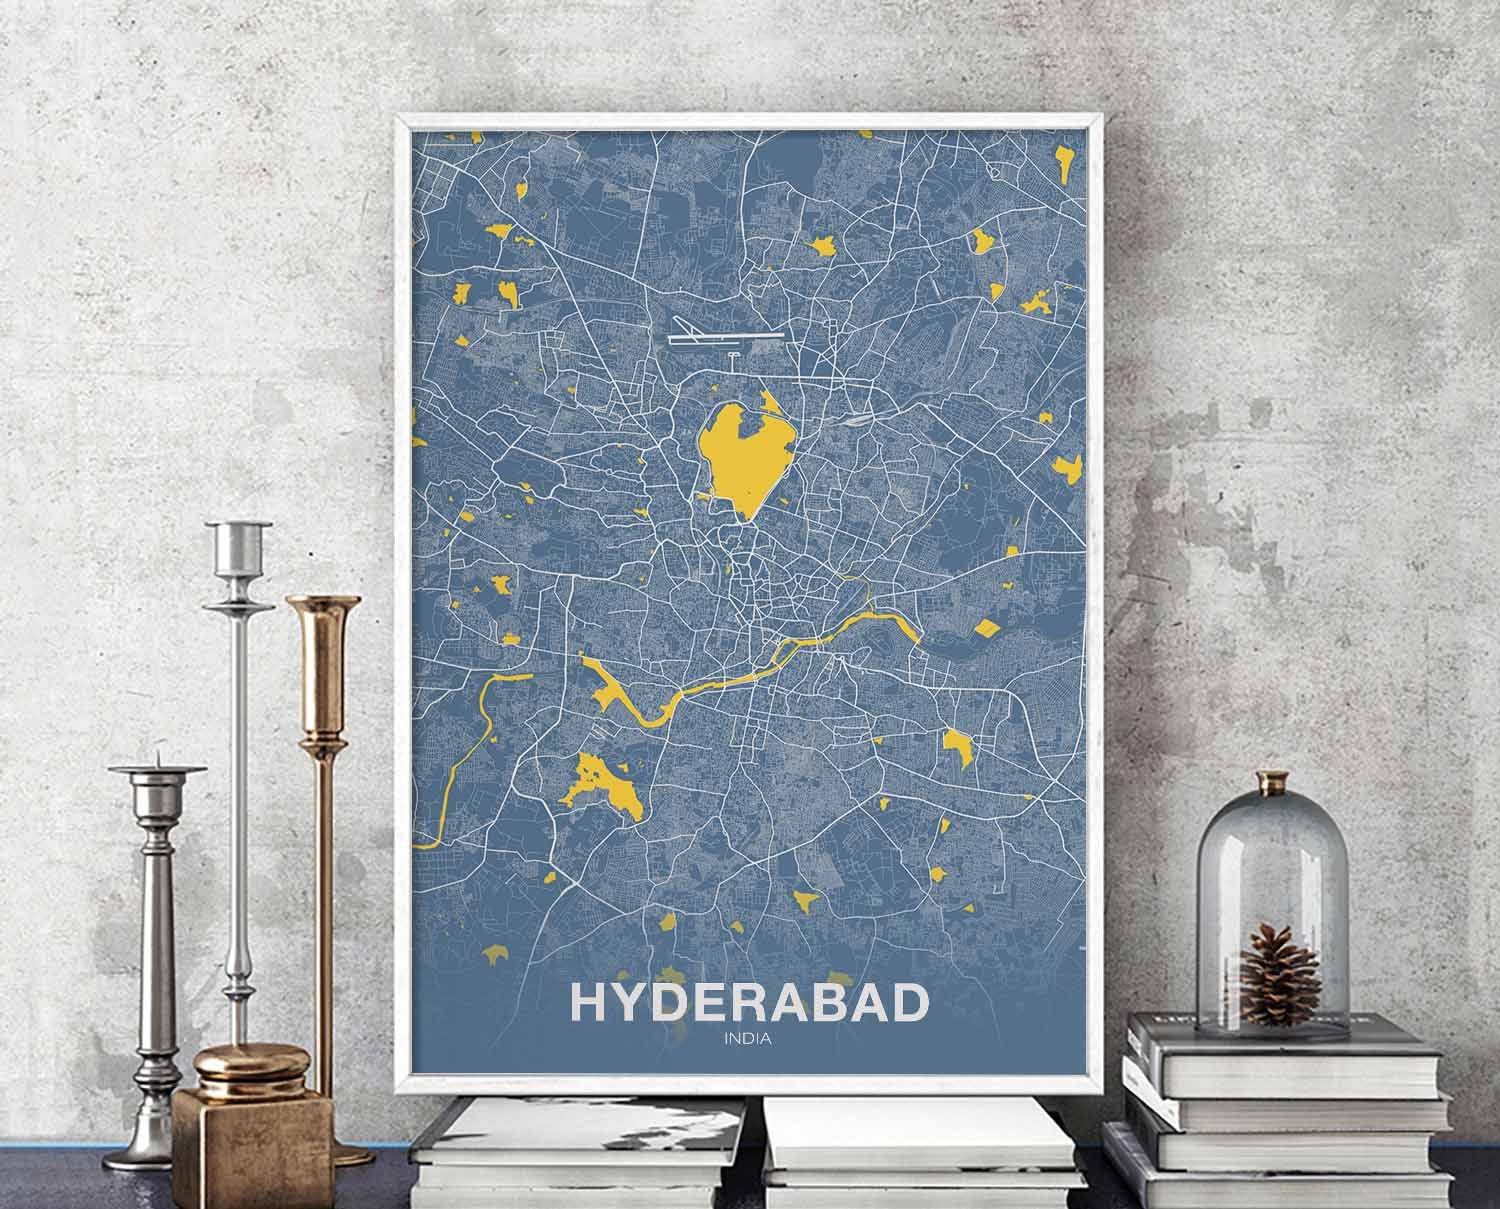 Hyderabad India Poster Color Wall Decor Design Modern Swiss